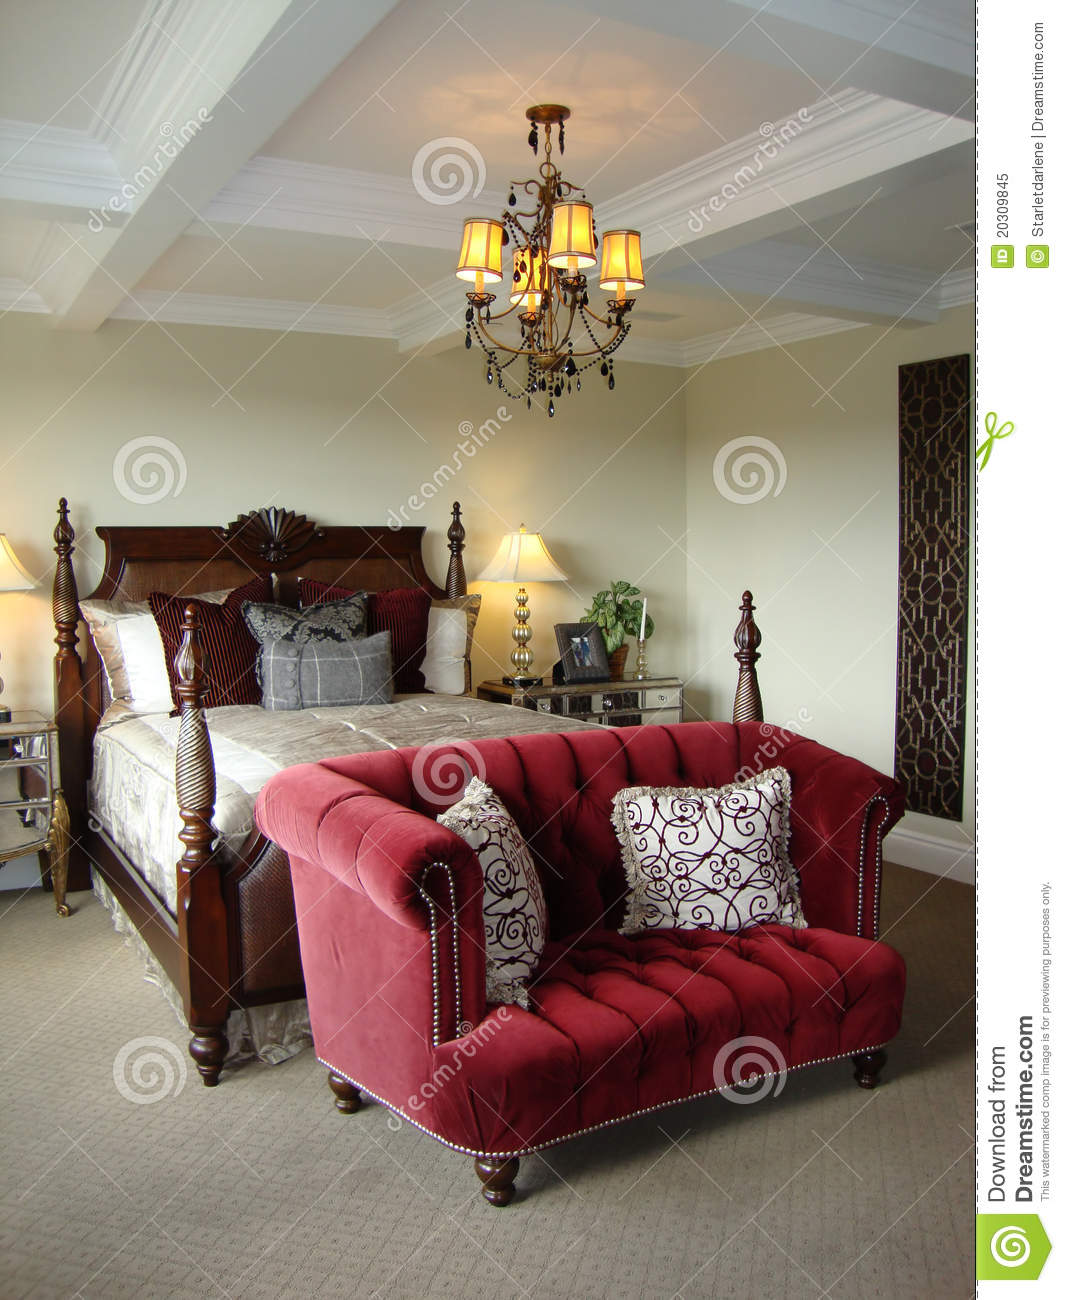 Beautiful Master Bedroom Suite Stock Image Image Of Suite Architecture 20309845